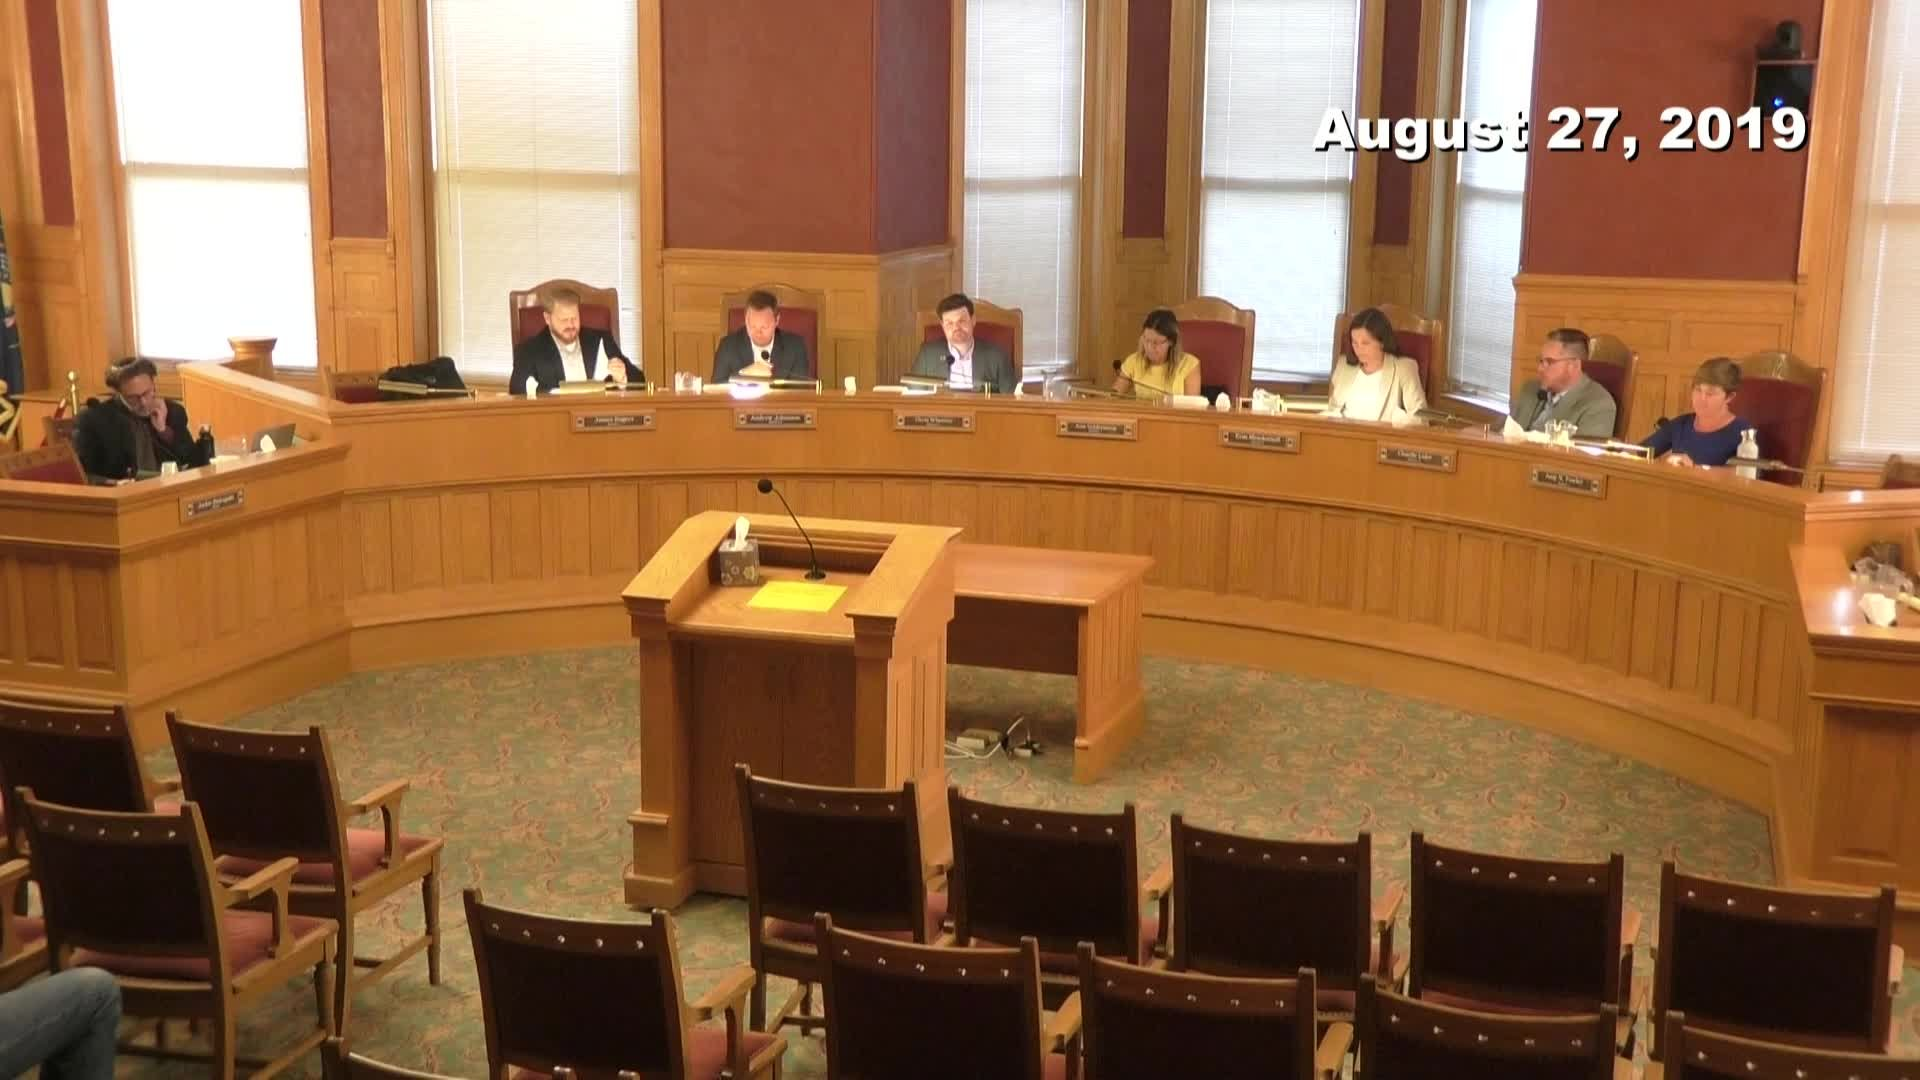 City Council Formal Meeting - 08/27/2019